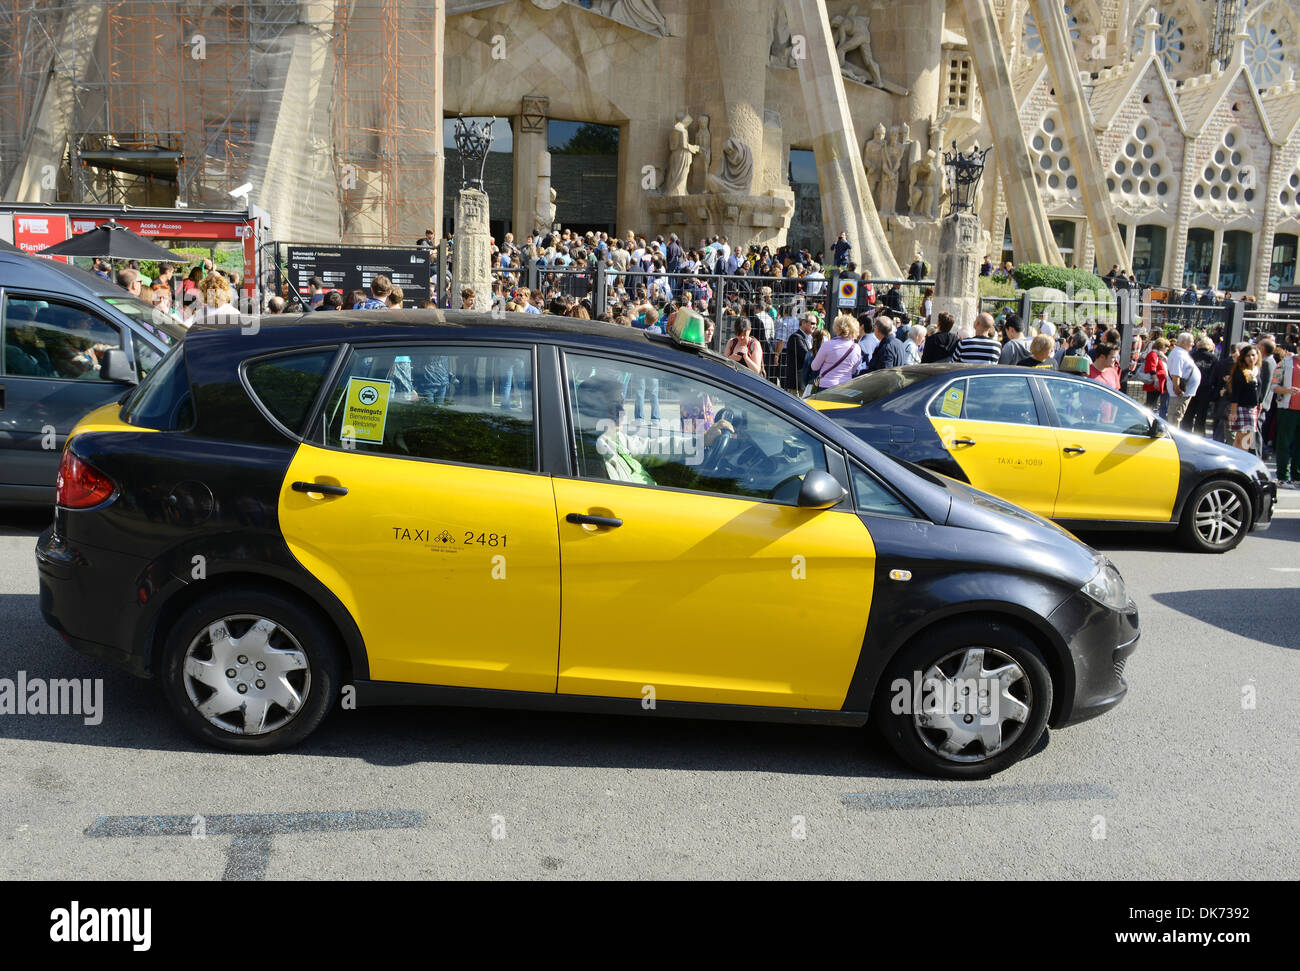 Taxi cab at sagrada familia barcelona spain stock photo 63465838 alamy - Cab in barcelona ...